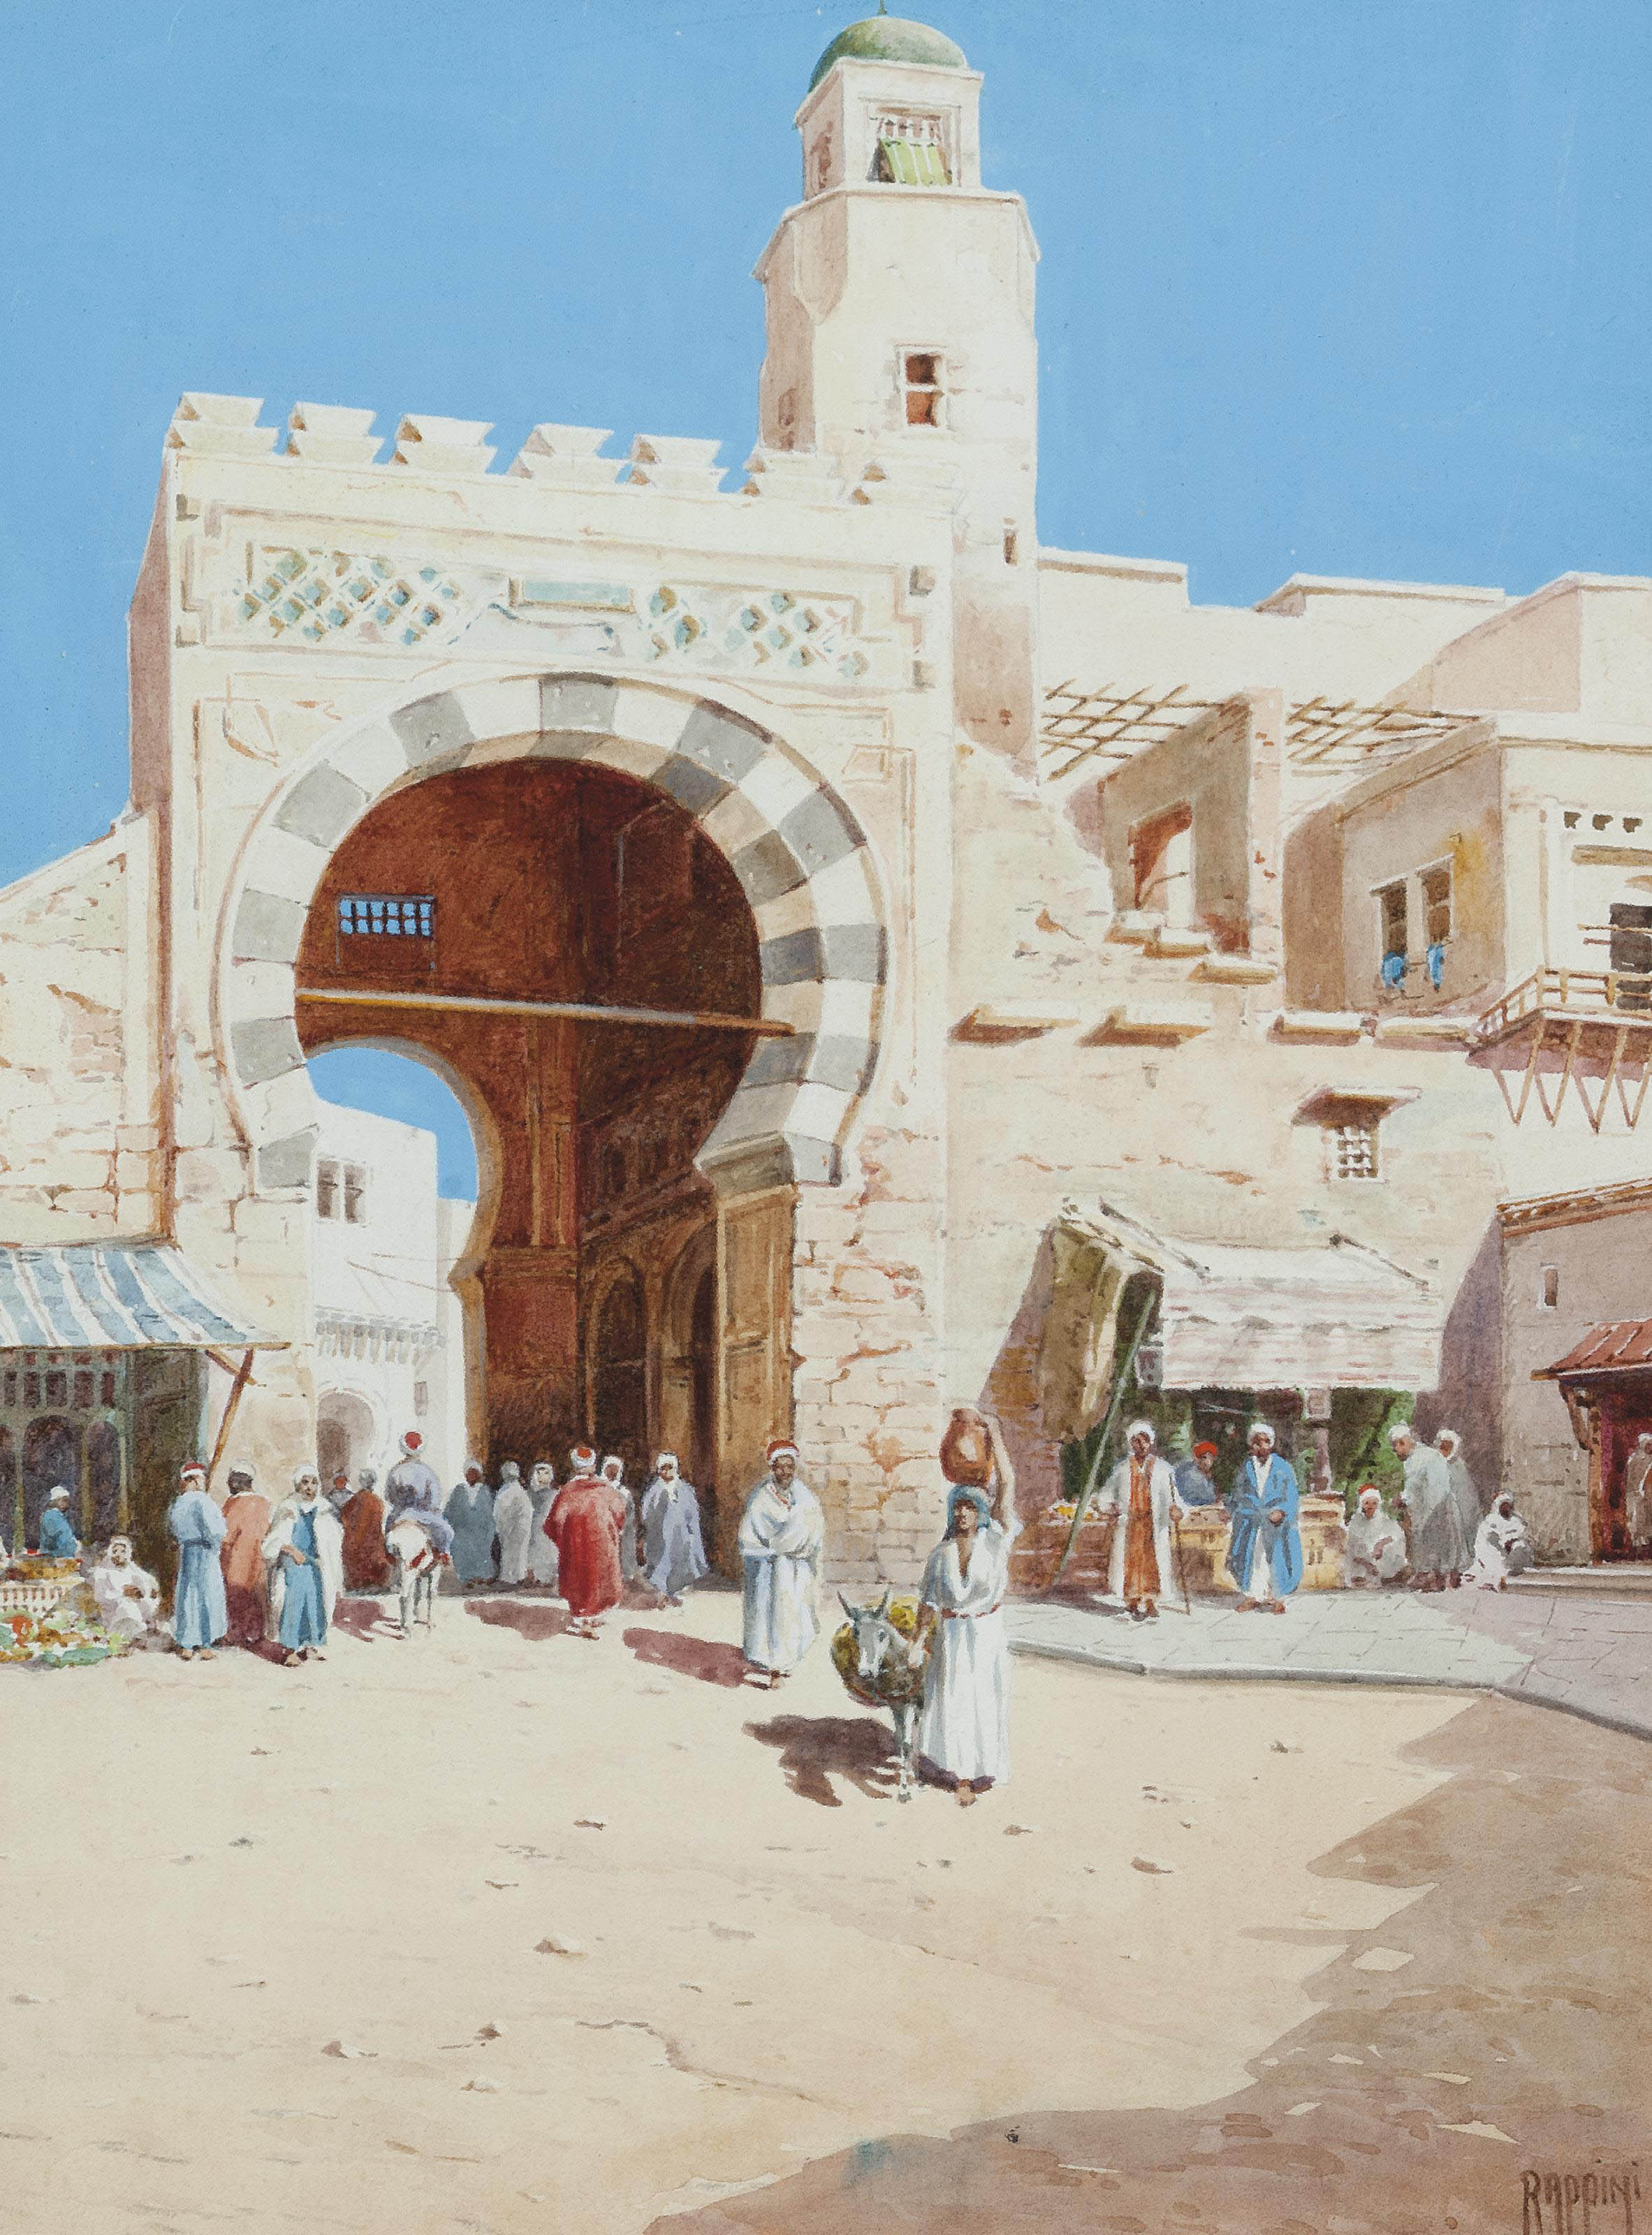 Arabs at the entrance to a walled city